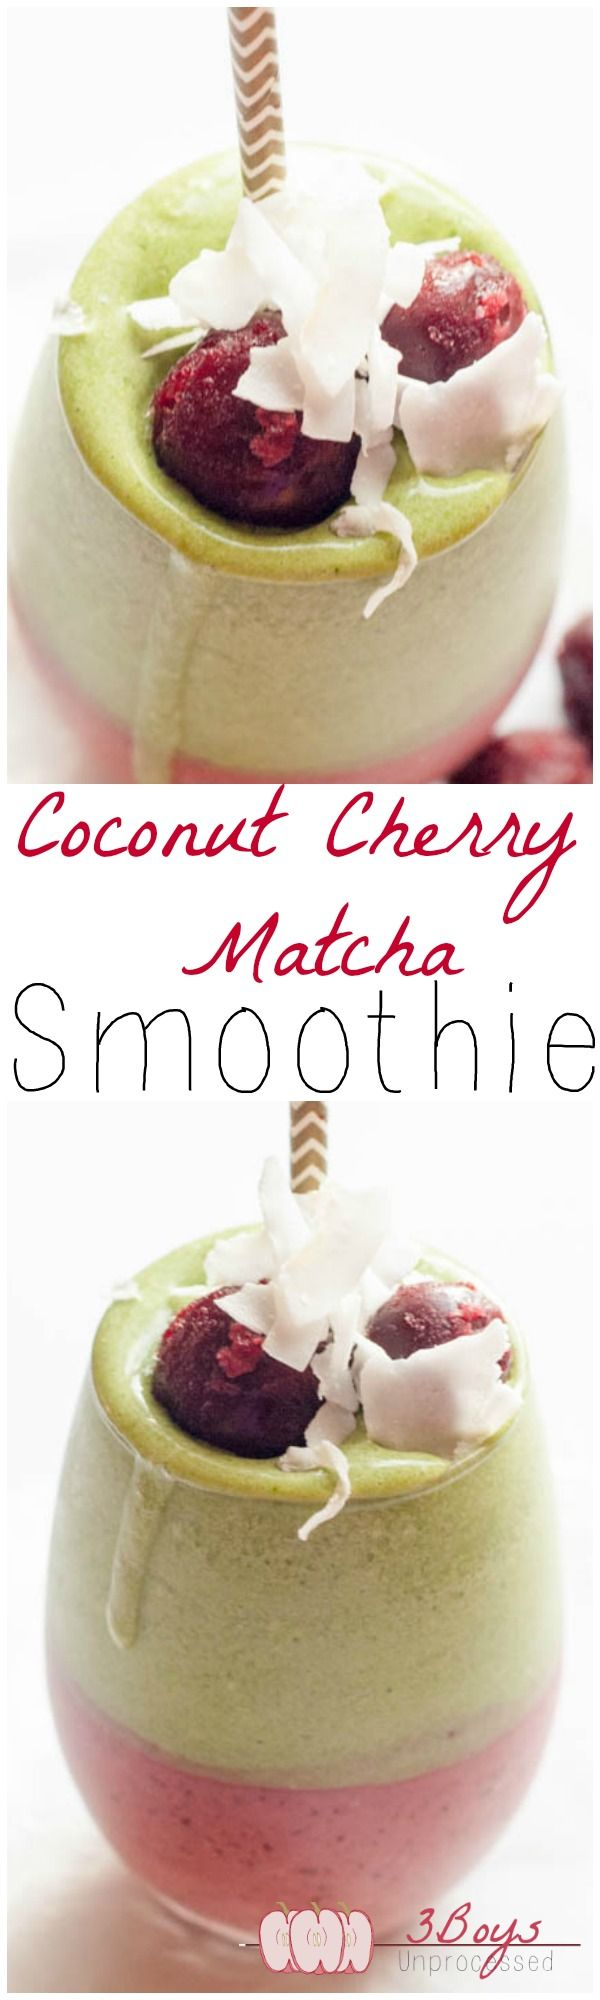 This Coconut Cherry Matcha Smoothie is a delicious way to take in a ton of antioxidants.